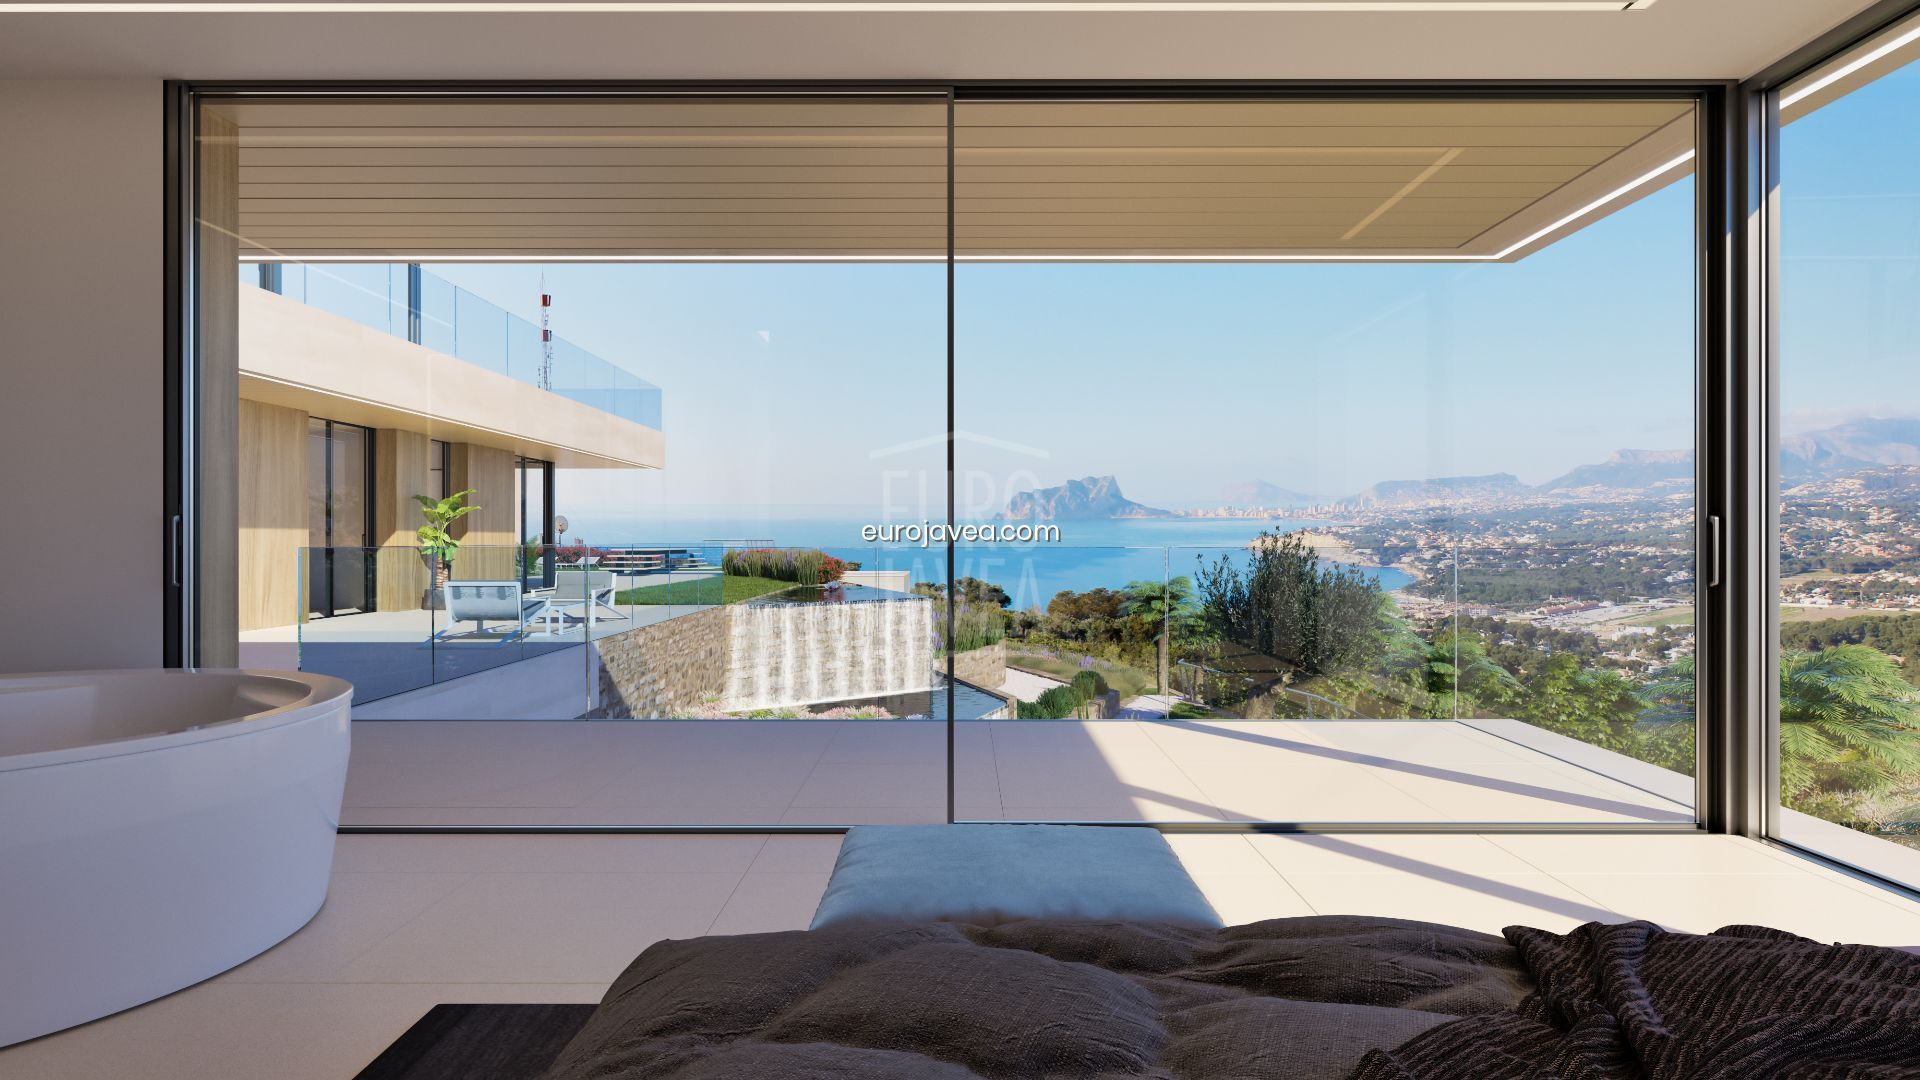 Construction project of a Luxury Villa for sale in Moraira with spectacular sea views